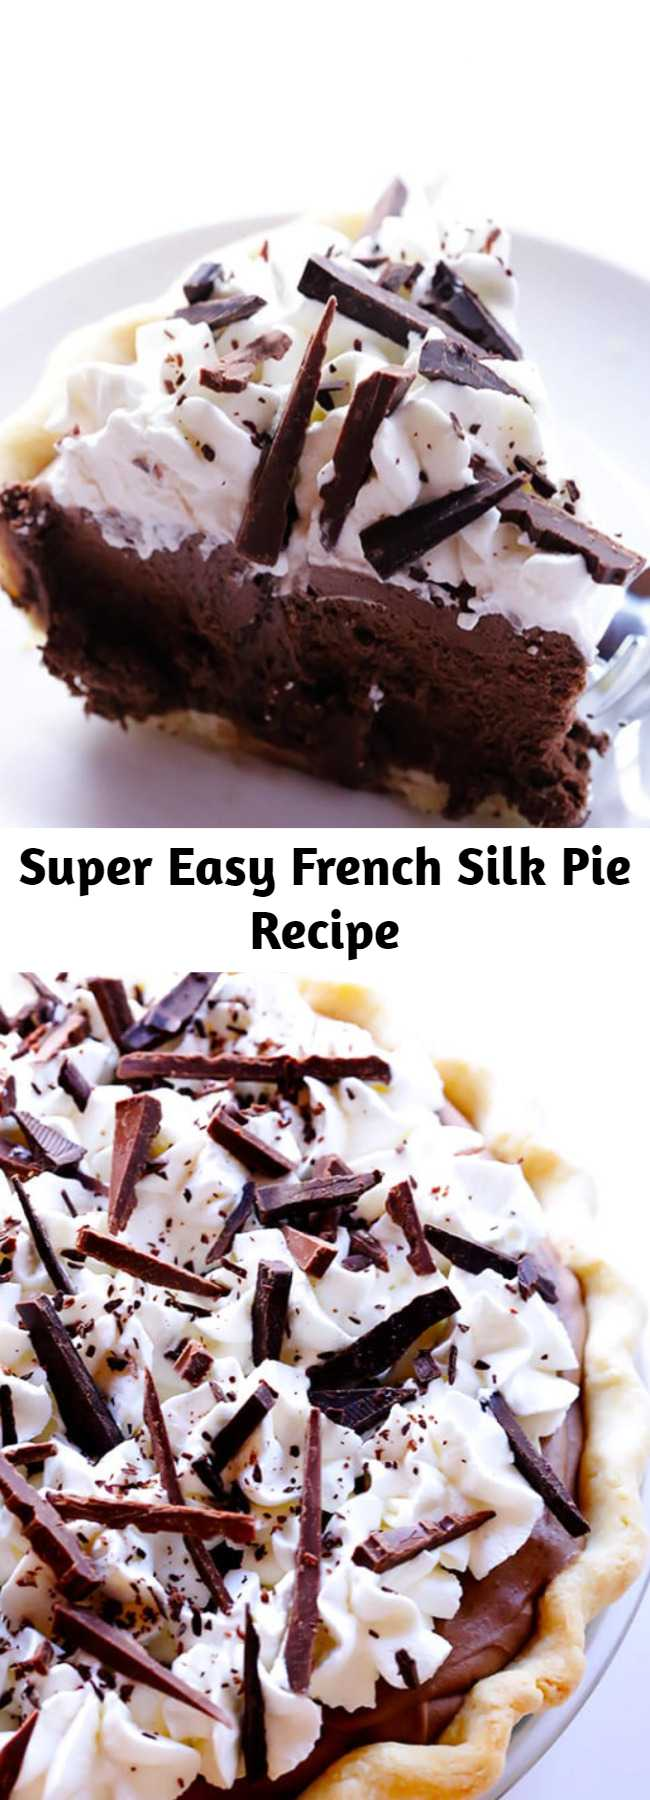 Super Easy French Silk Pie Recipe - If you love chocolate pie, you are going to love this French Silk Pie recipe! Some of you probably know it simply as Chocolate Pie. But whatever you call it, this French Silk Chocolate Pie is decadent, creamy, silky, and a definite crowd-pleaser. And it is filled with chocolate!!!